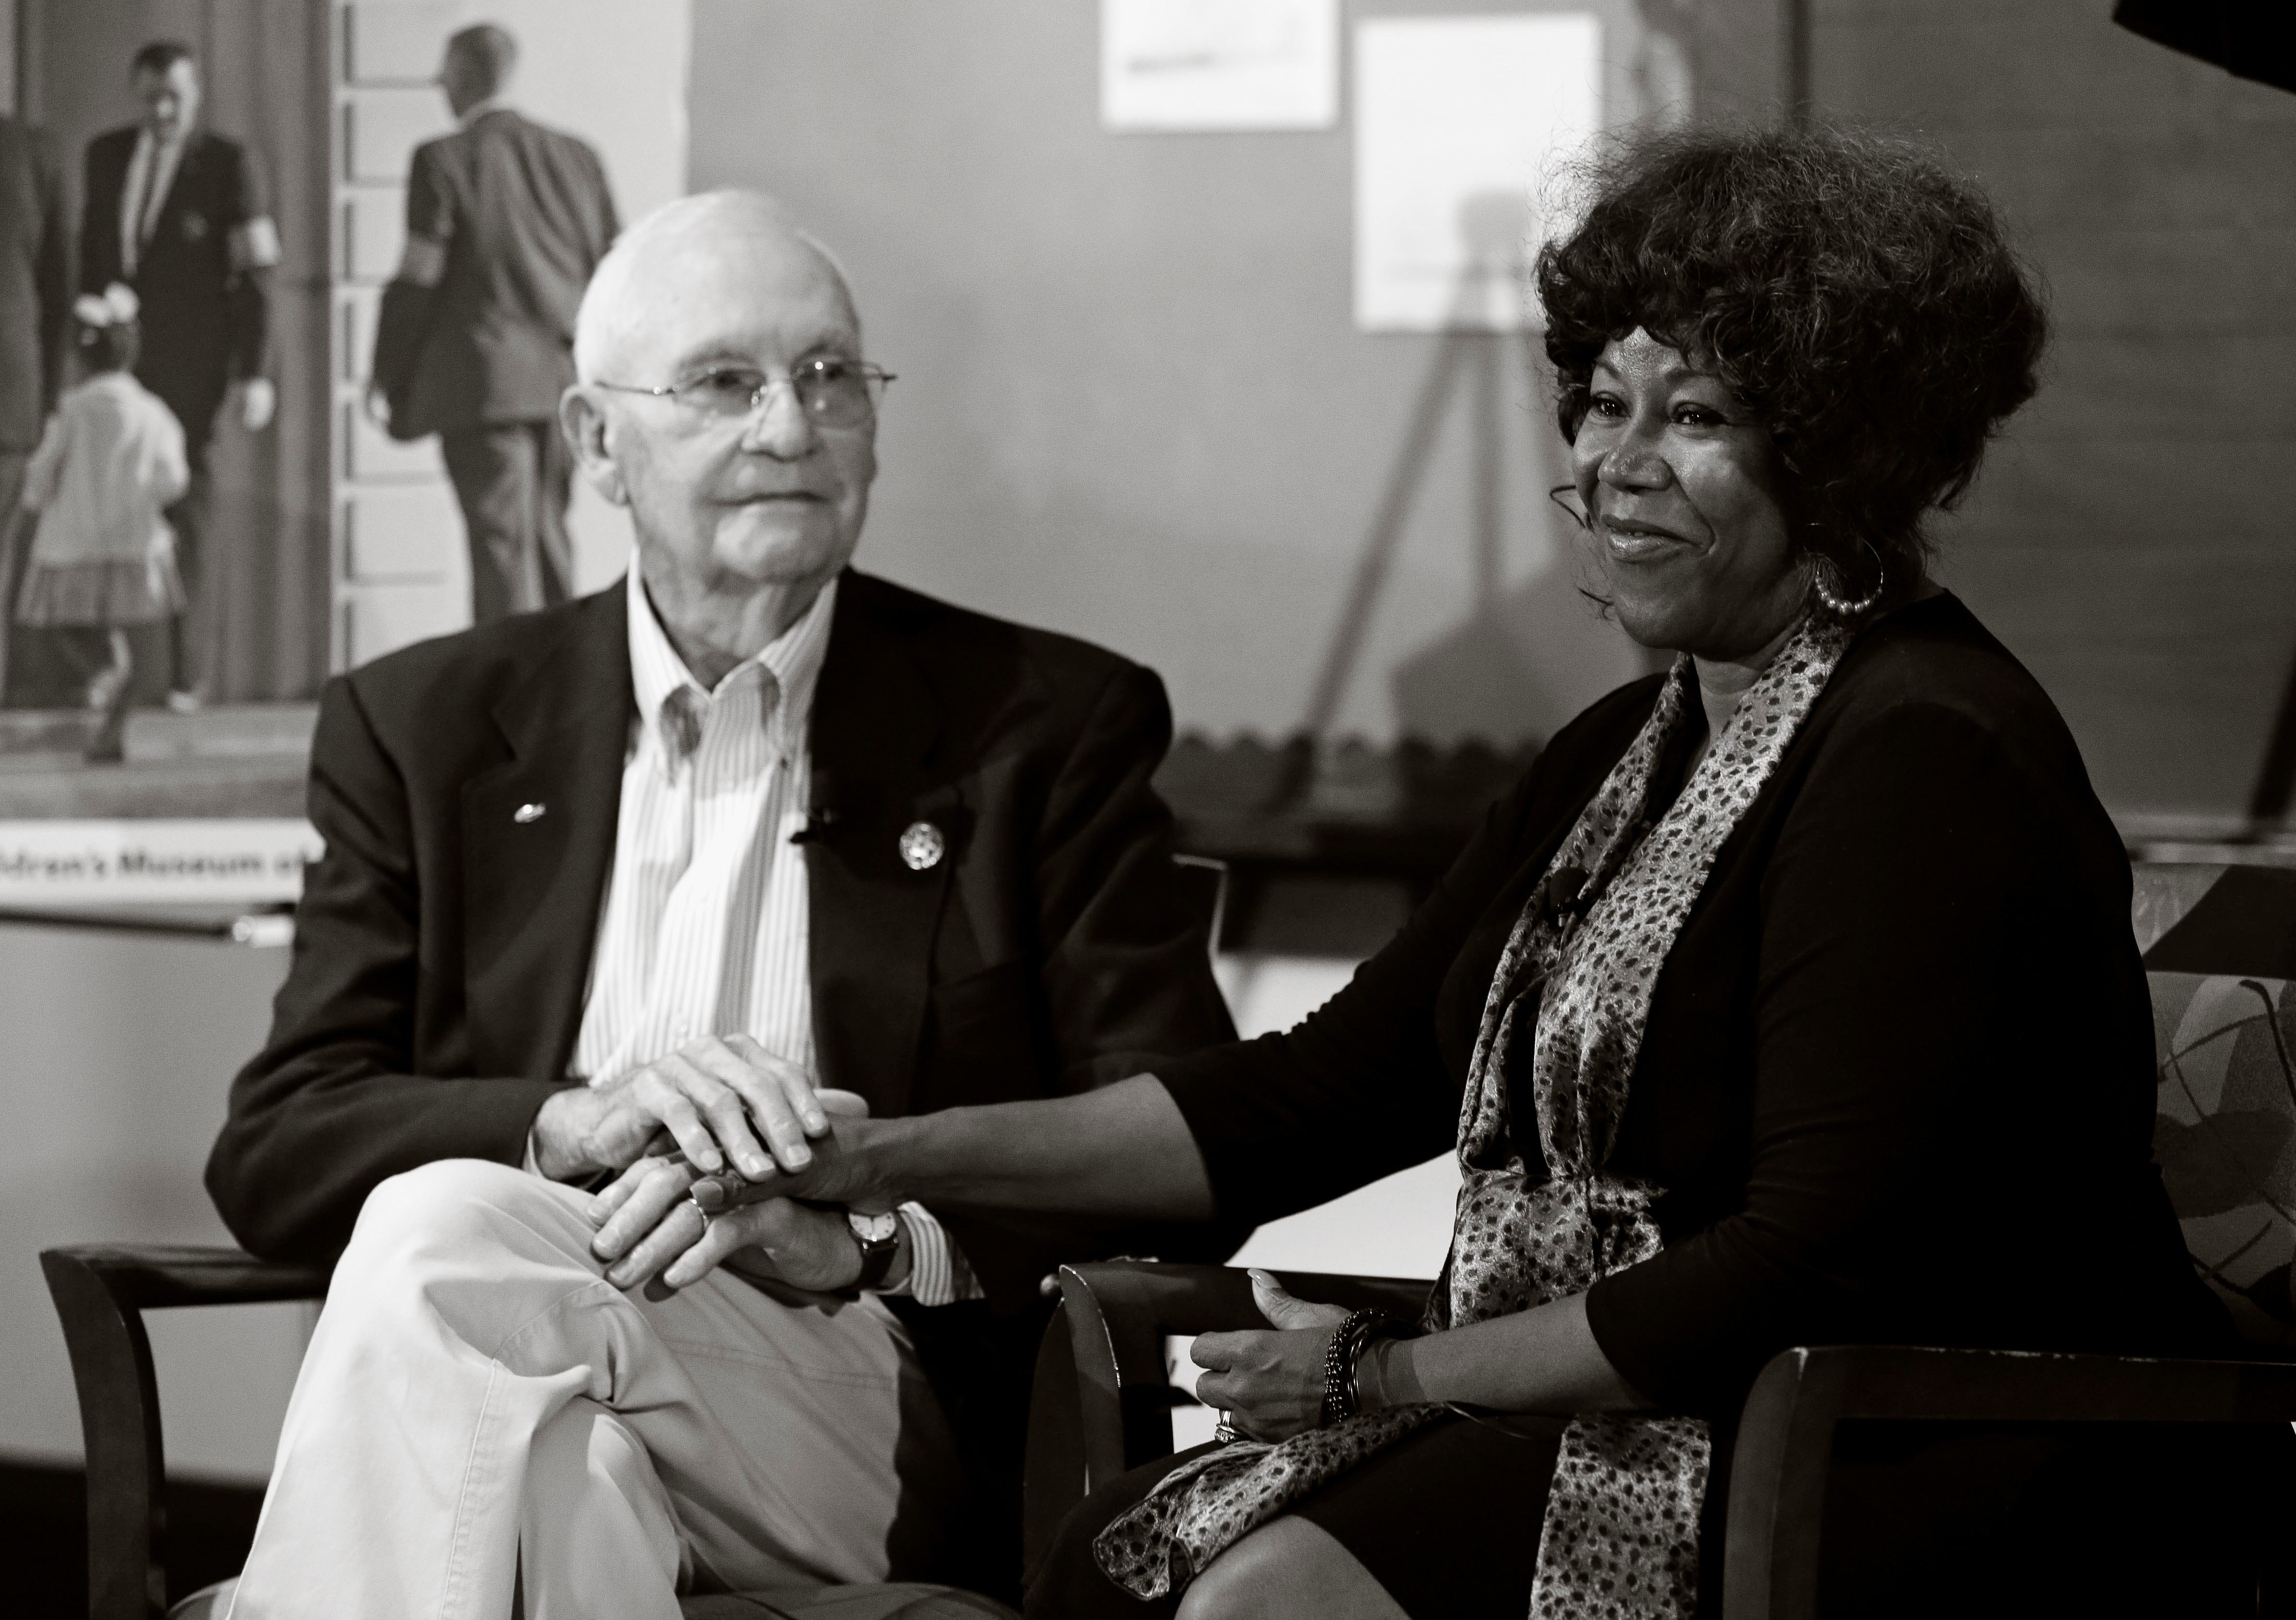 More than 50 years after their first meeting, Ruby Bridges visited with Charles Burks, one of the U.S. marshals who escorted her to and from school when she integrated a Louisiana school in 1960.